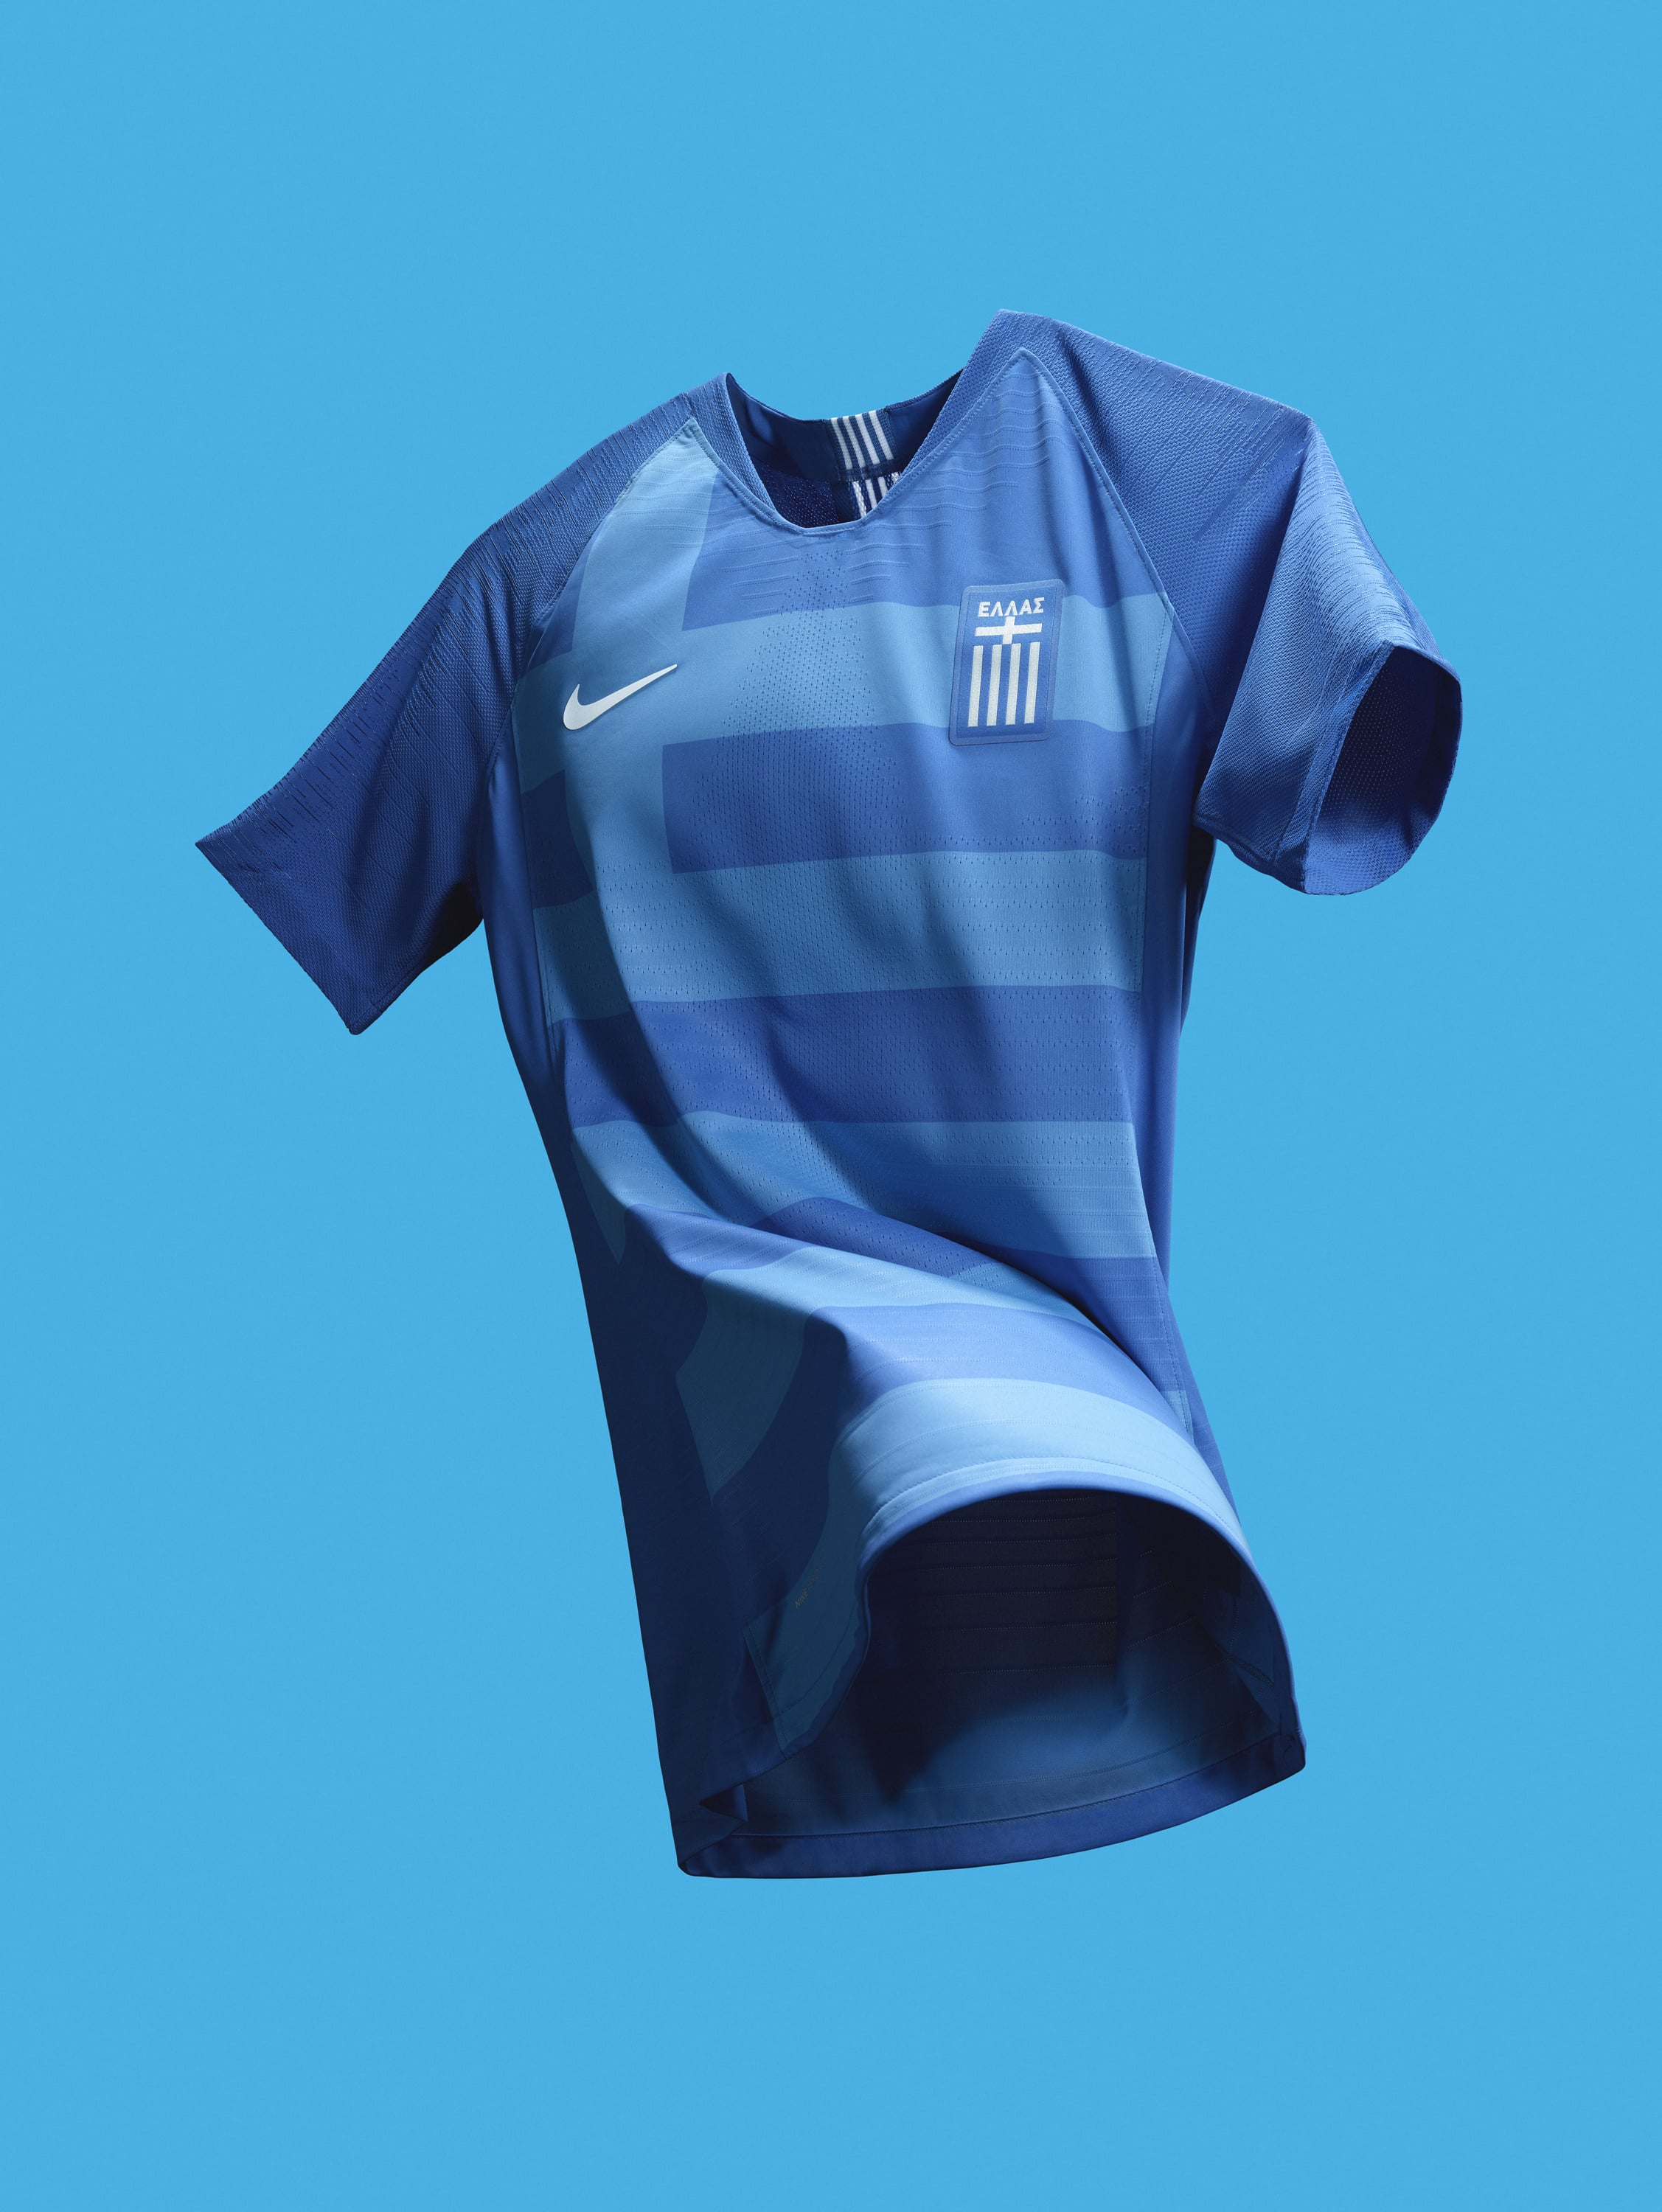 maillot-football-Nike-Grece-domicile-2018-img2